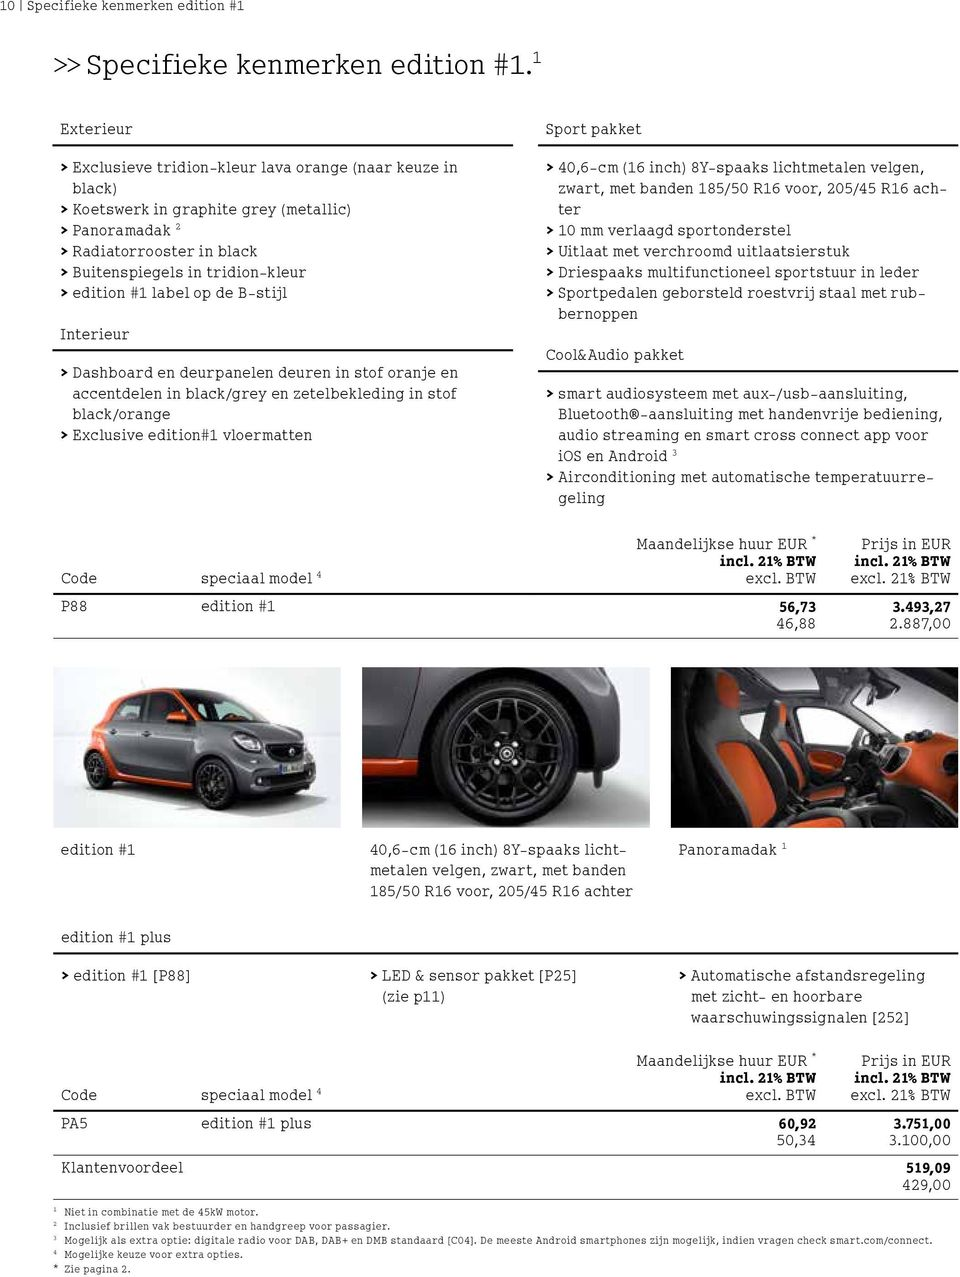 > edition # label op de B-stijl Interieur > > Dashboard en deurpanelen deuren in stof oranje en accentdelen in black/grey en zetelbekleding in stof black/orange > > Exclusive edition# vloermatten